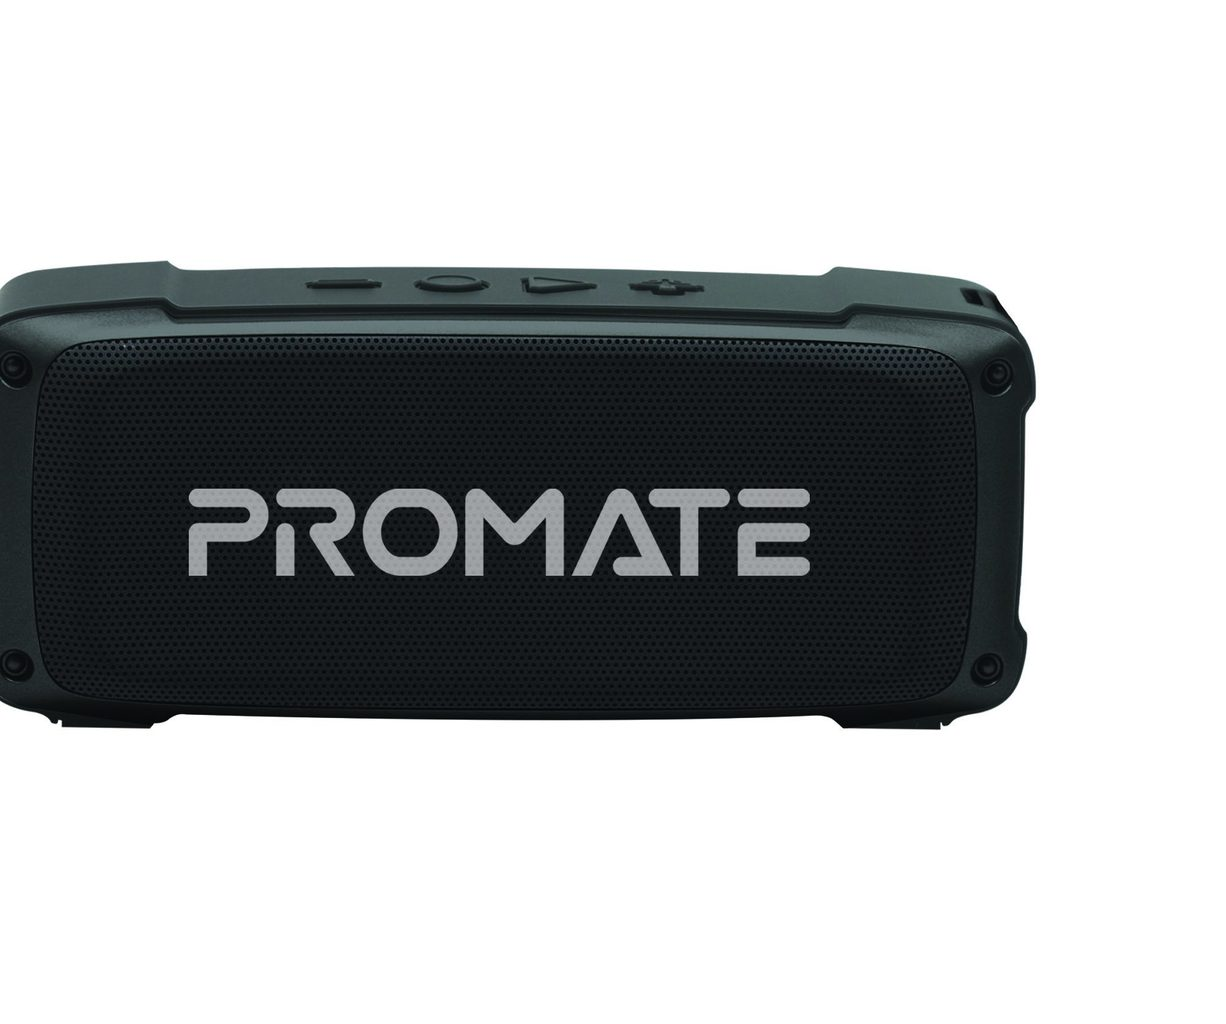 Promate Bluetooth Speaker, Premium 6W HD Rugged Wireless Speaker with 4H Playtime, Built-in Mic, FM Radio, 3.5mm Aux Port, TF Card Slot and USB Media Port for iPhone 12, iPad Pro, iPod, Android, OutBeat Black